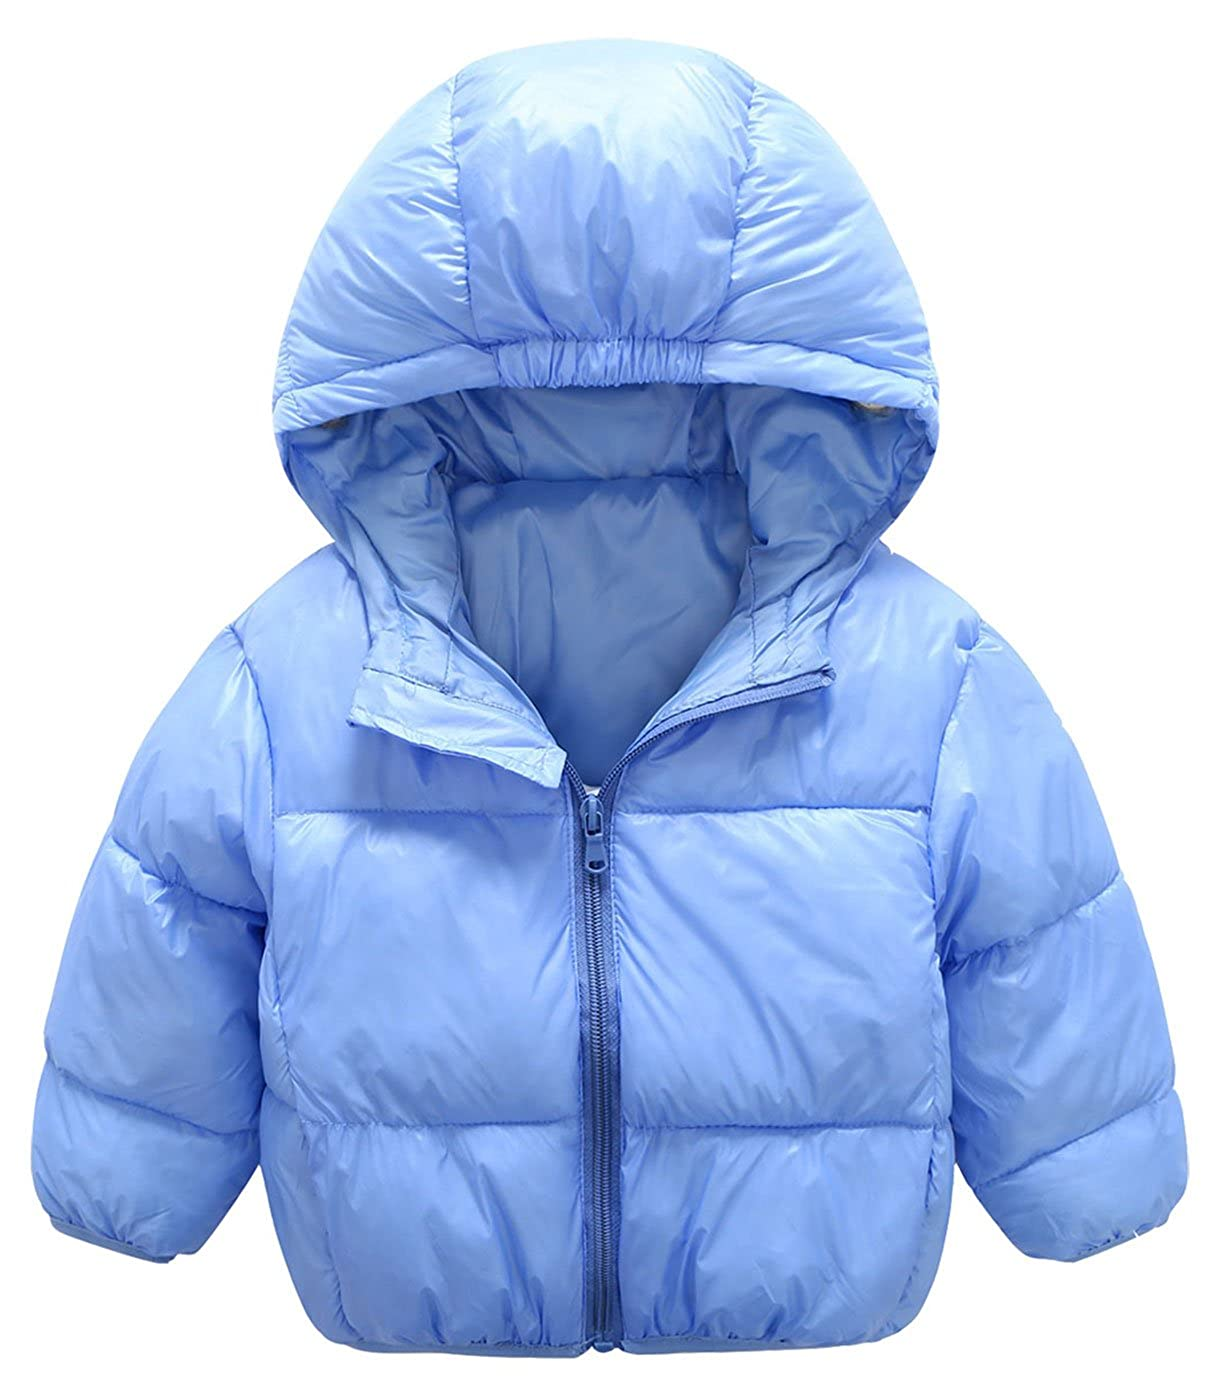 Mengxiaoya Baby Boys Girls Down Jacket Kids Hoodie Coat Winter Outerwear Solid